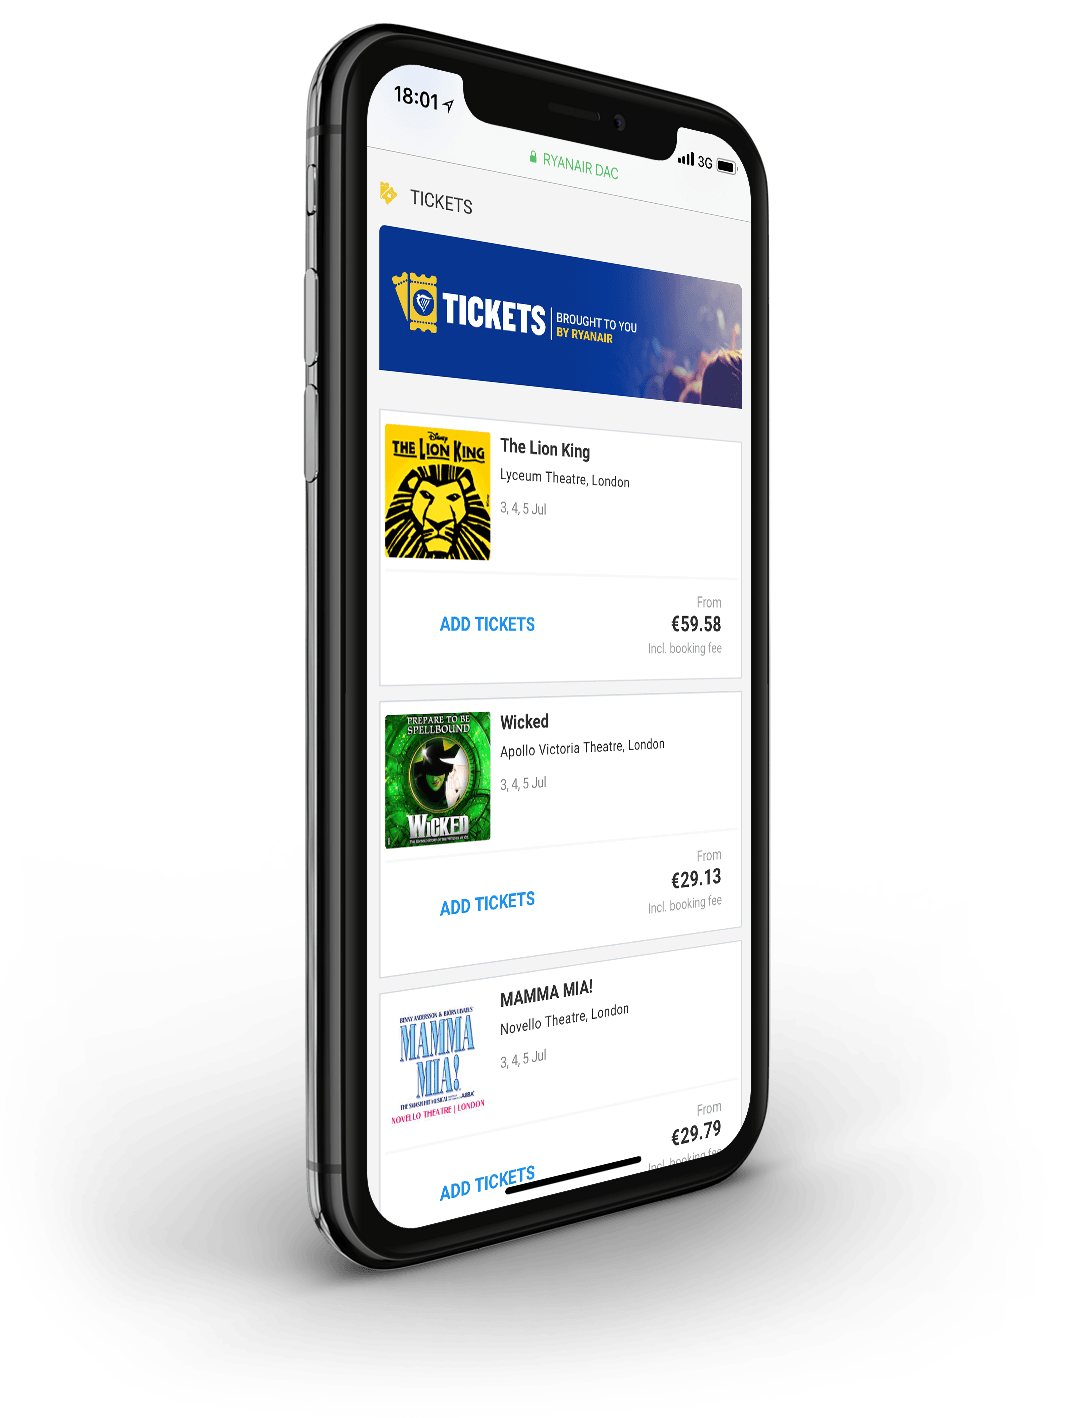 Ryanair Tickets displayed on iPhone